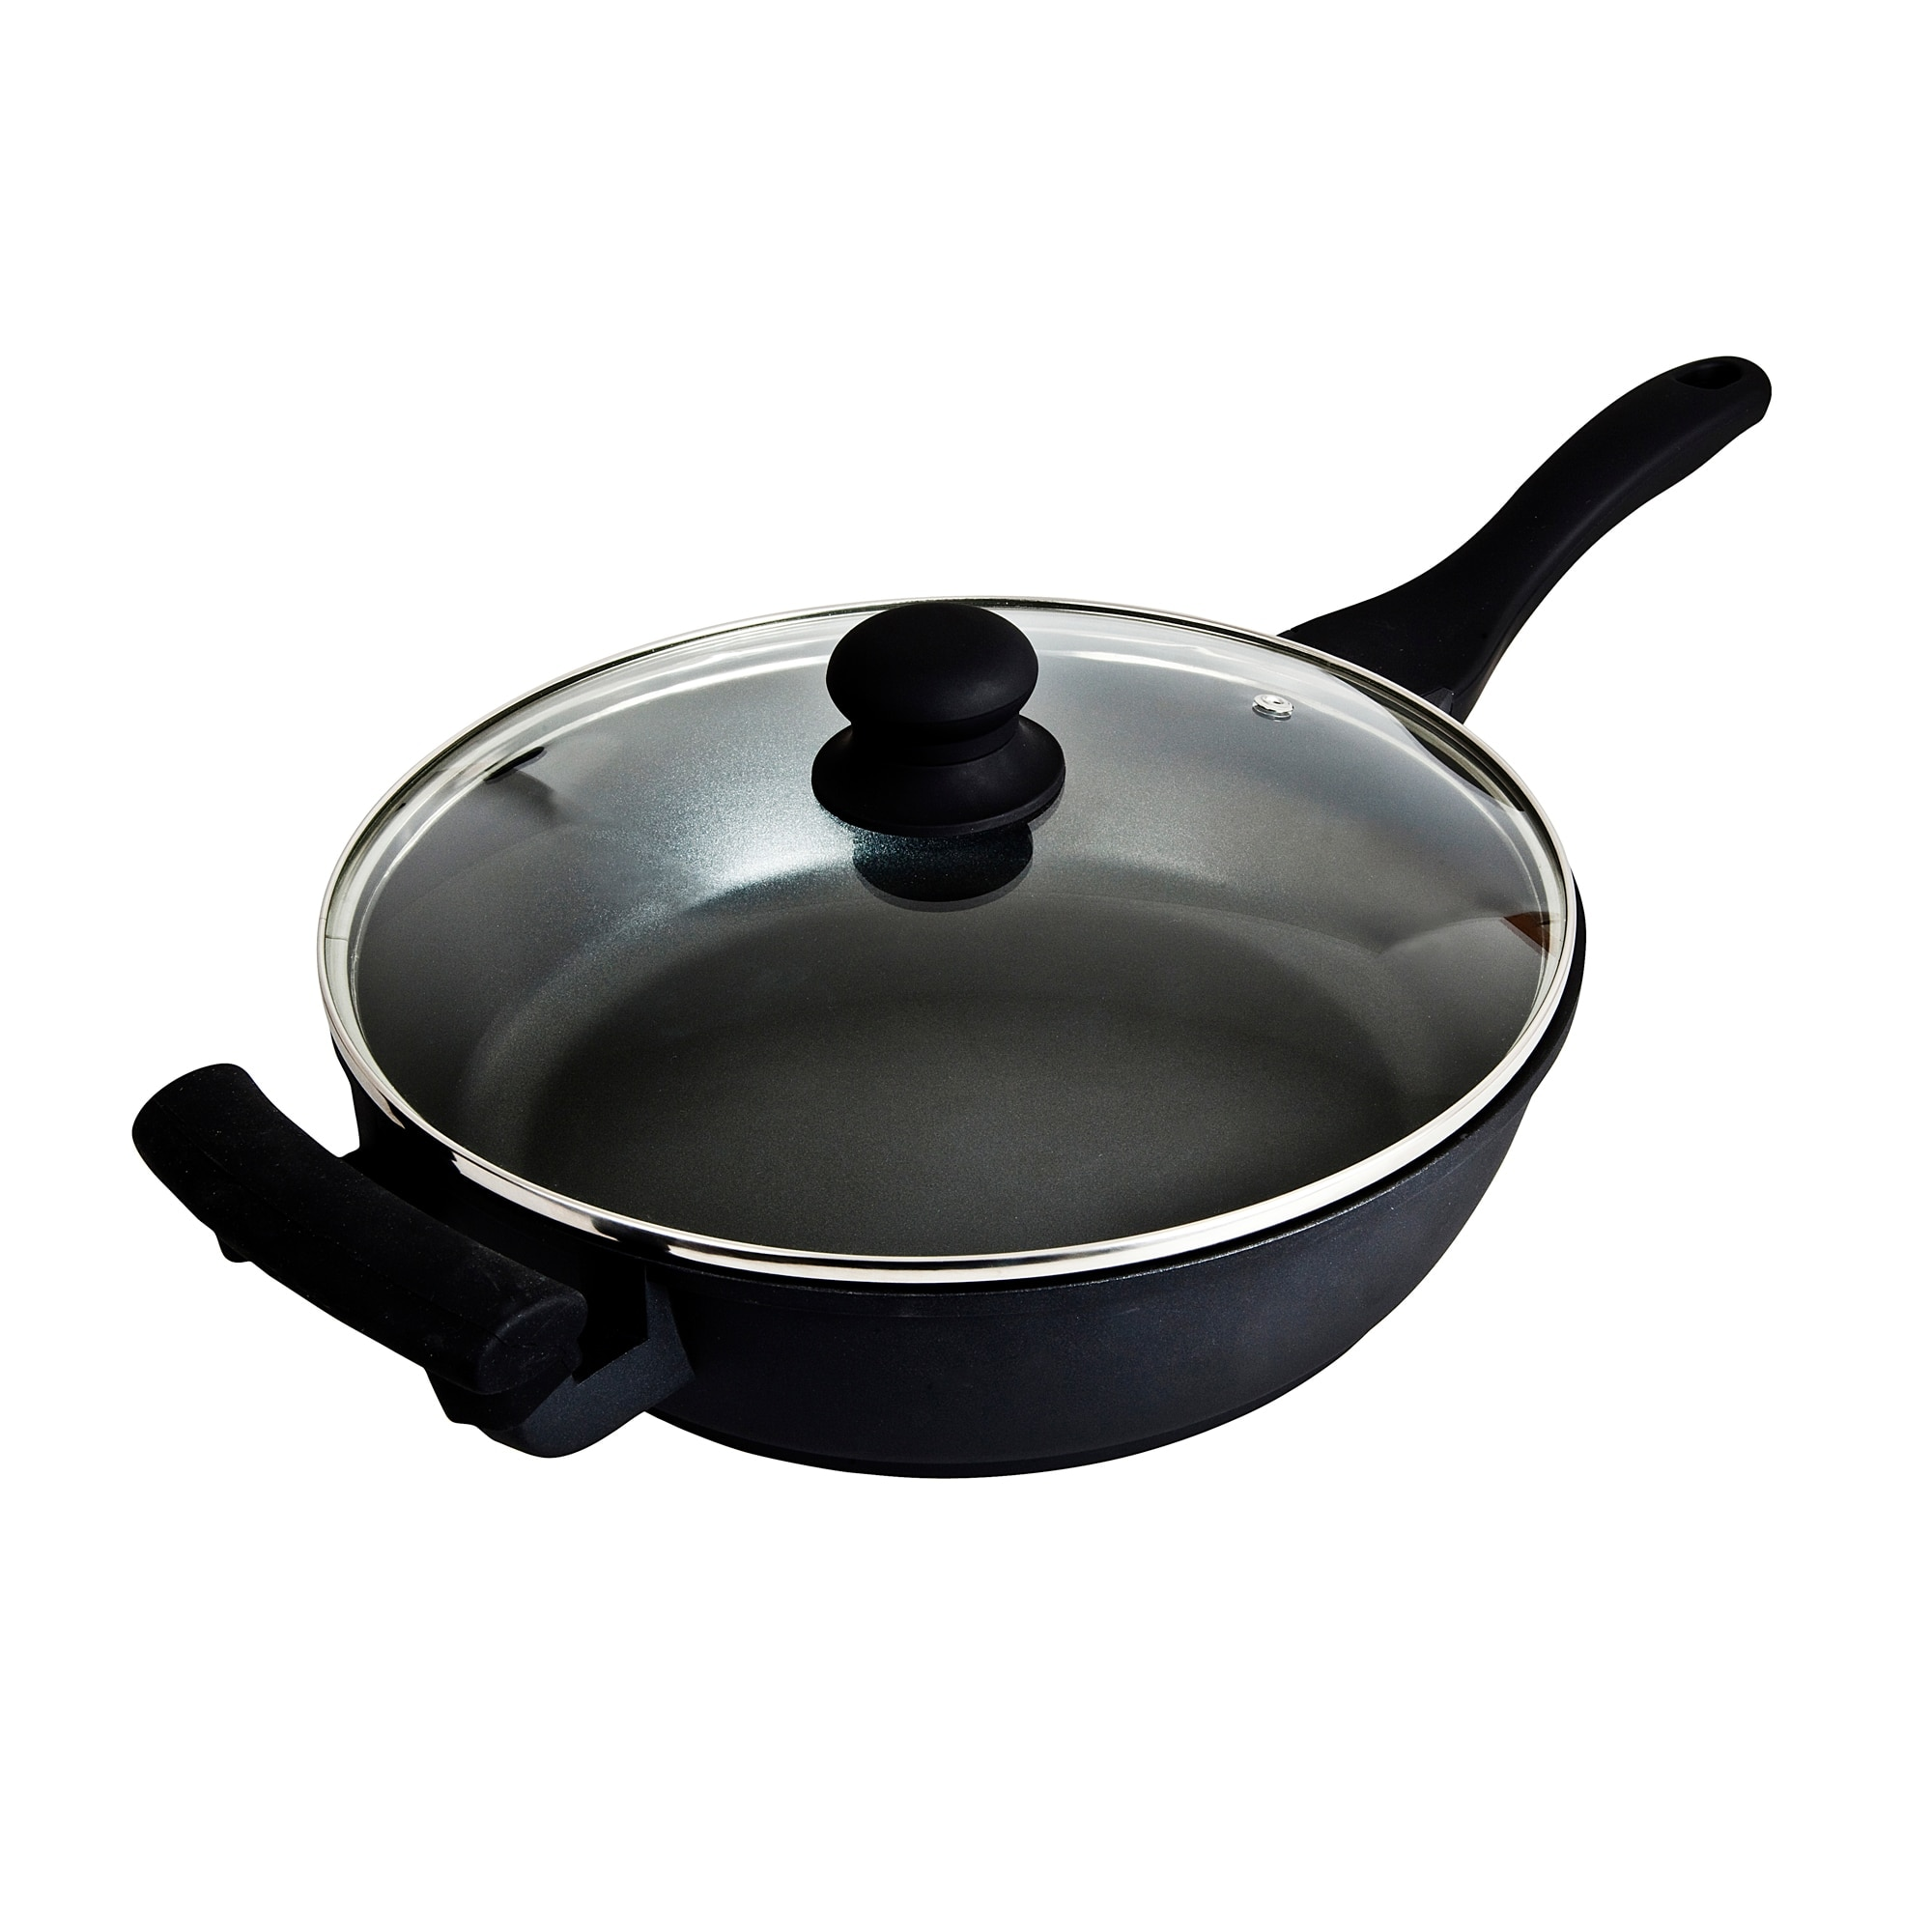 Compare prices for Denby Cast Aluminium Deep Frypan With Glass Lid 28Cm X 7.5Cm